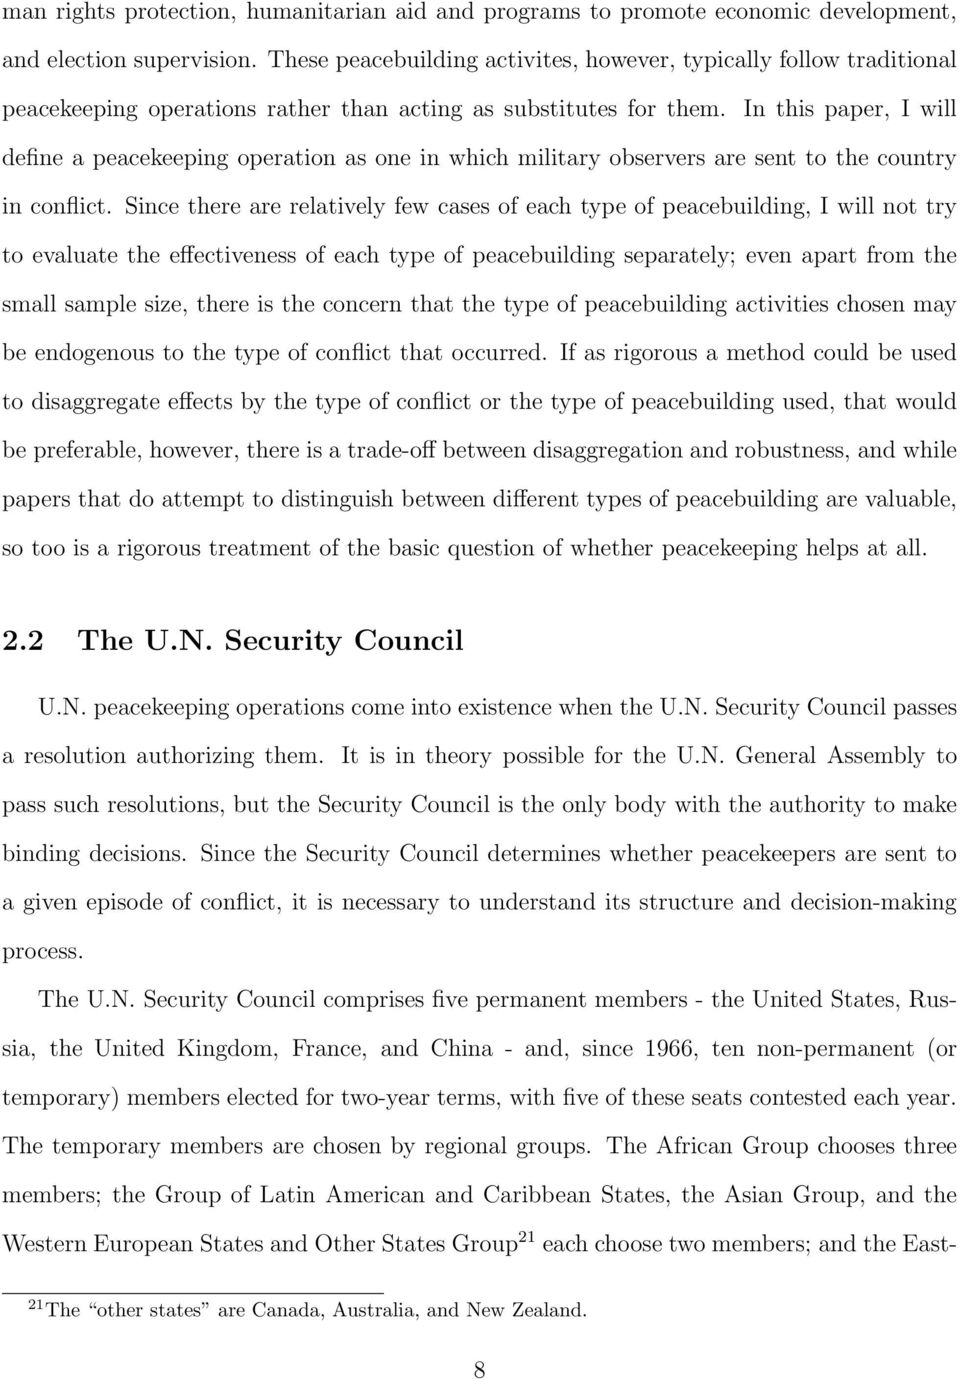 In this paper, I will define a peacekeeping operation as one in which military observers are sent to the country in conflict.